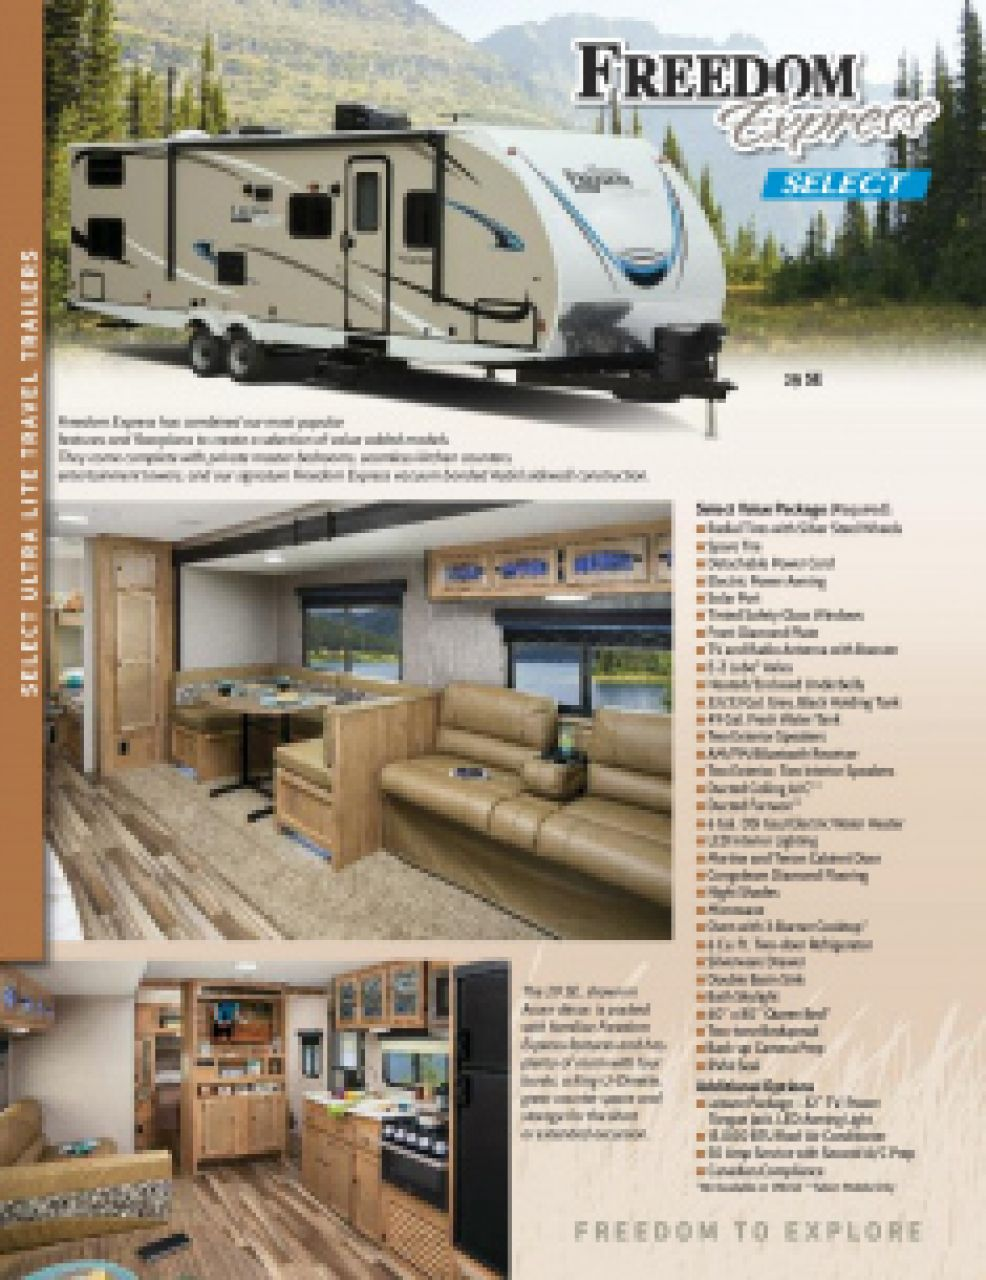 freedomexpressselect-2019-broch-gilrv-001-pdf